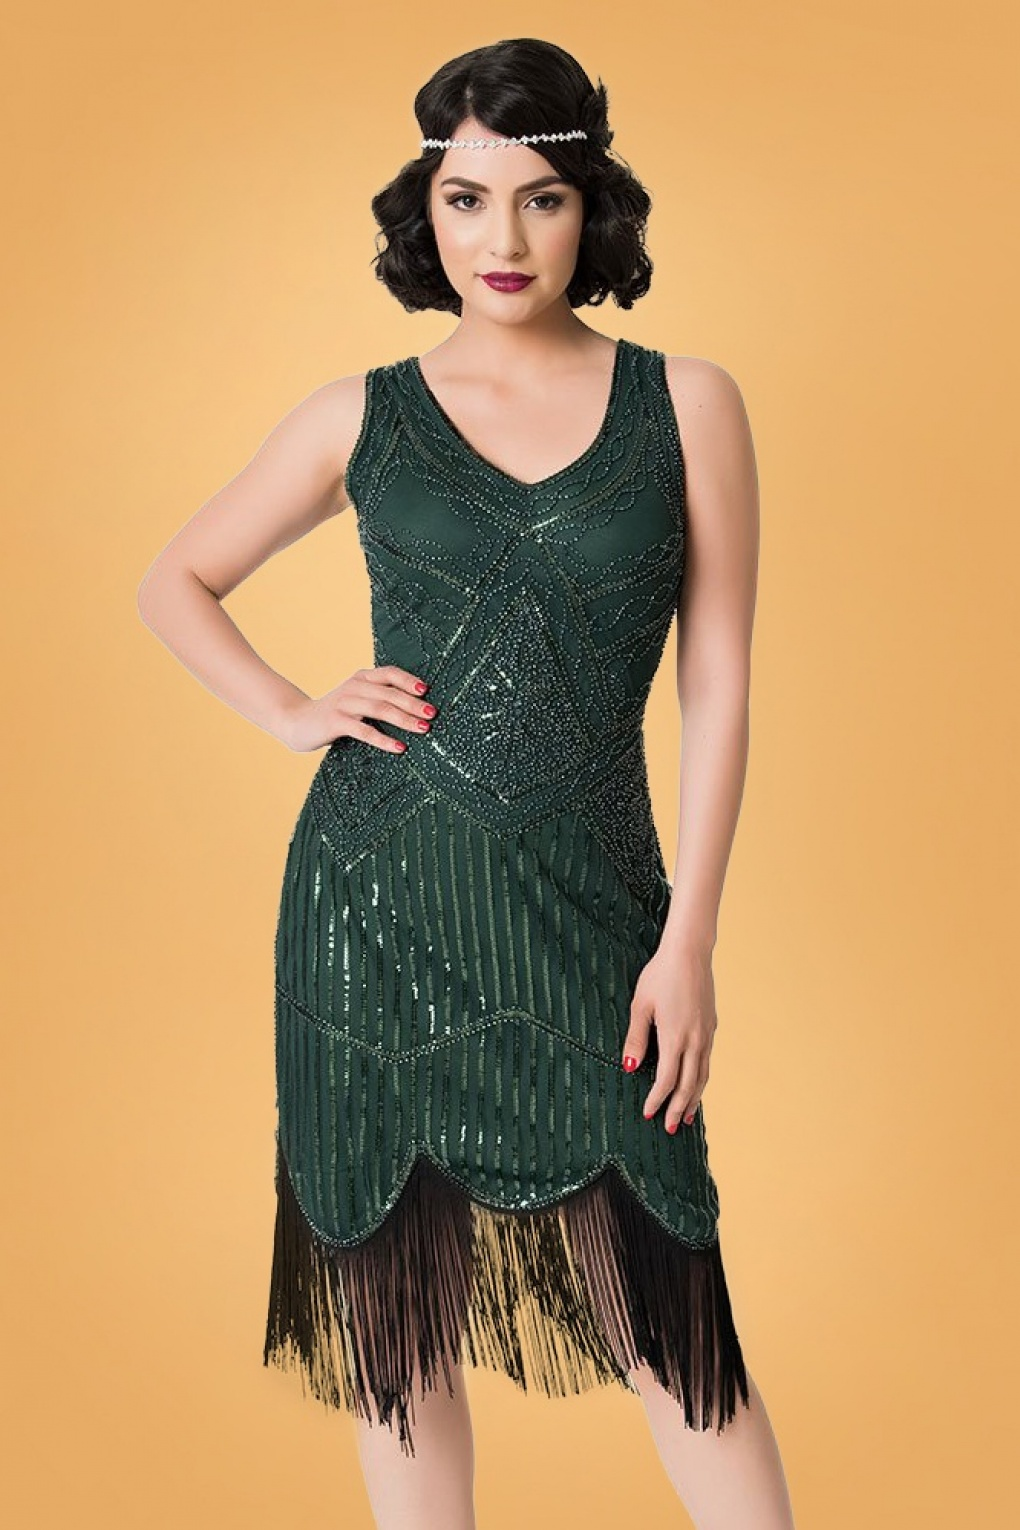 1920s Evening Dresses & Formal Gowns 20s Leonie Fringe Flapper Dress in Emerald Green £109.41 AT vintagedancer.com